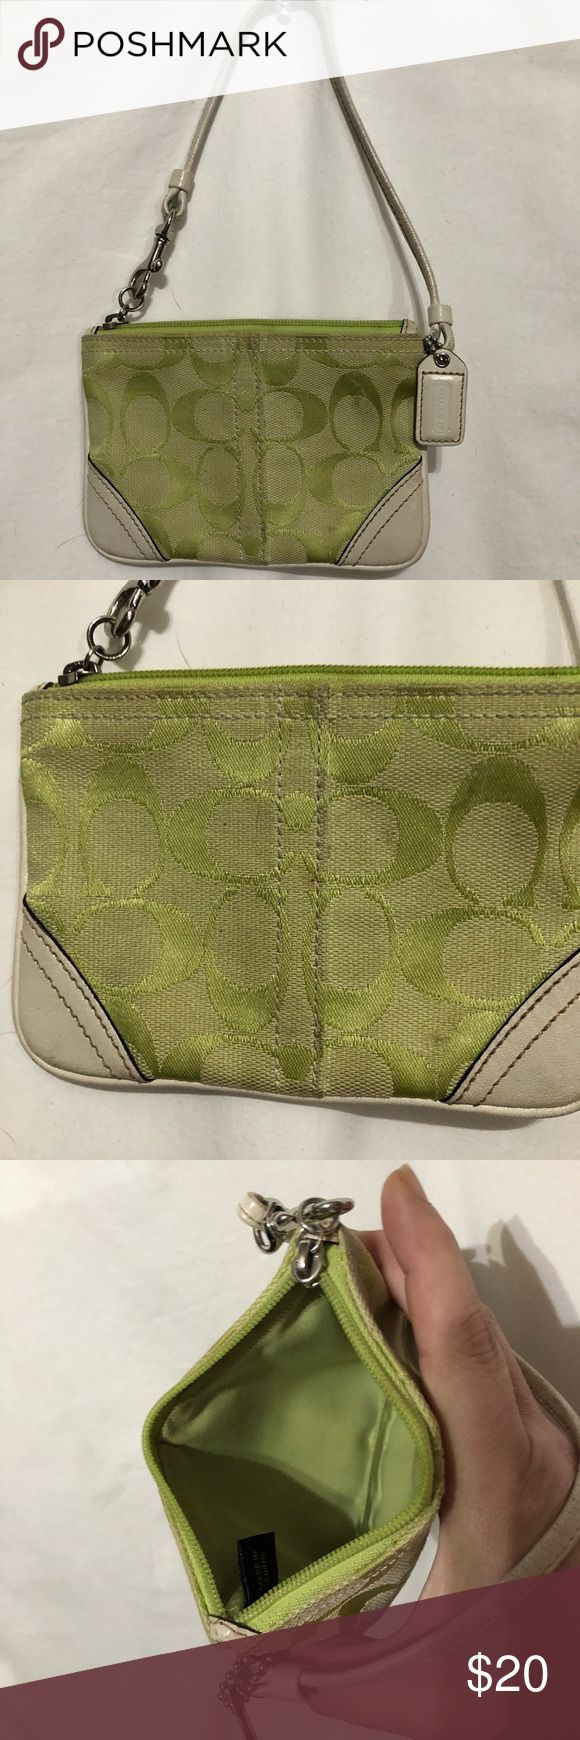 "Small Coach bag approximately 6"" x 4"" Chartreuse 4"" x 6"" Coach wristlet bag. Last pics show a light dirt spot on one side and a small thread defect on other side. Coach Bags"